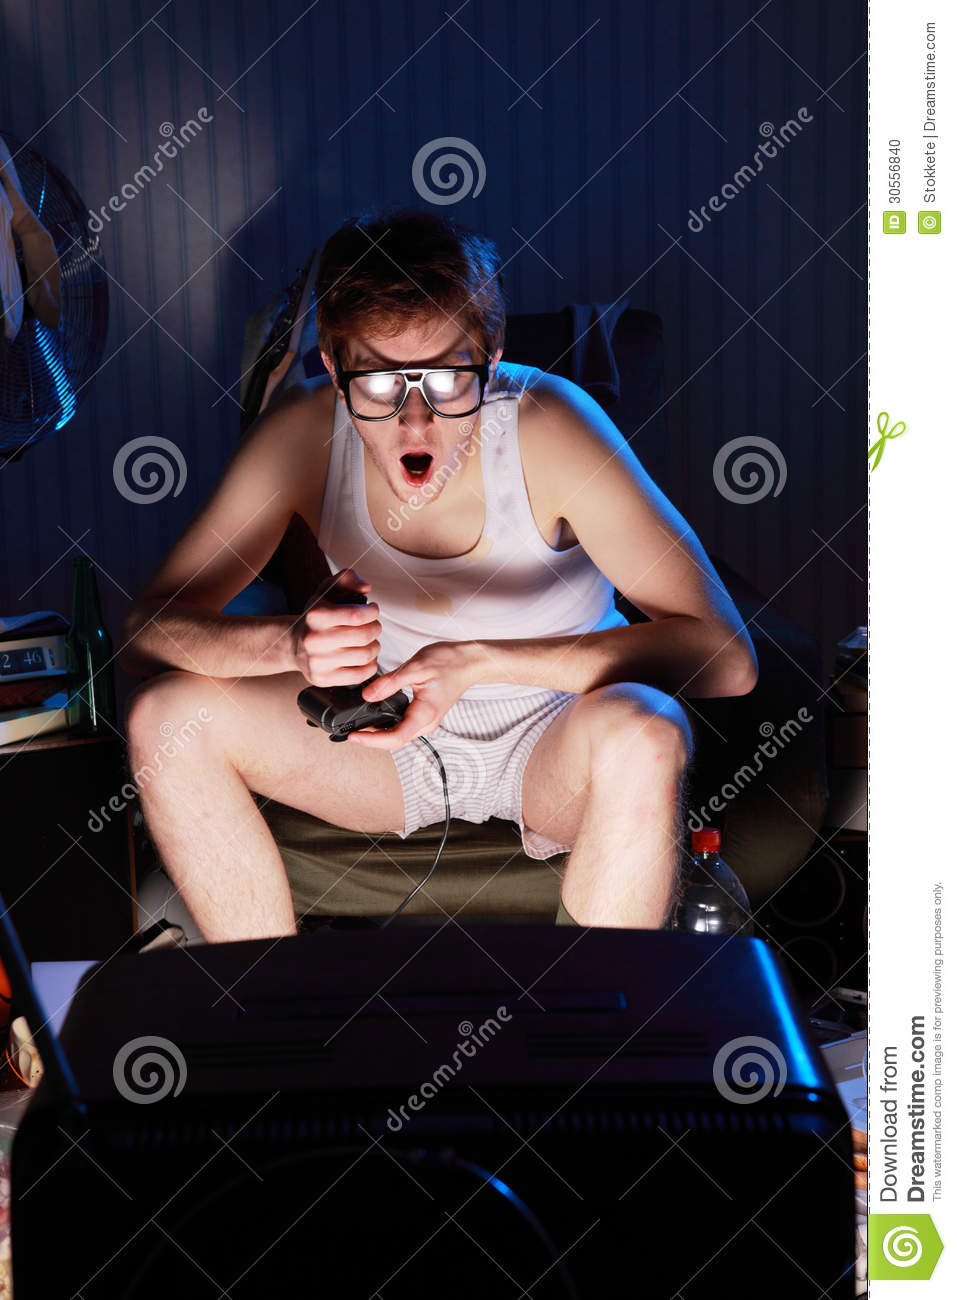 Gamer Nerd Playing Video Games On Television Stock Photo